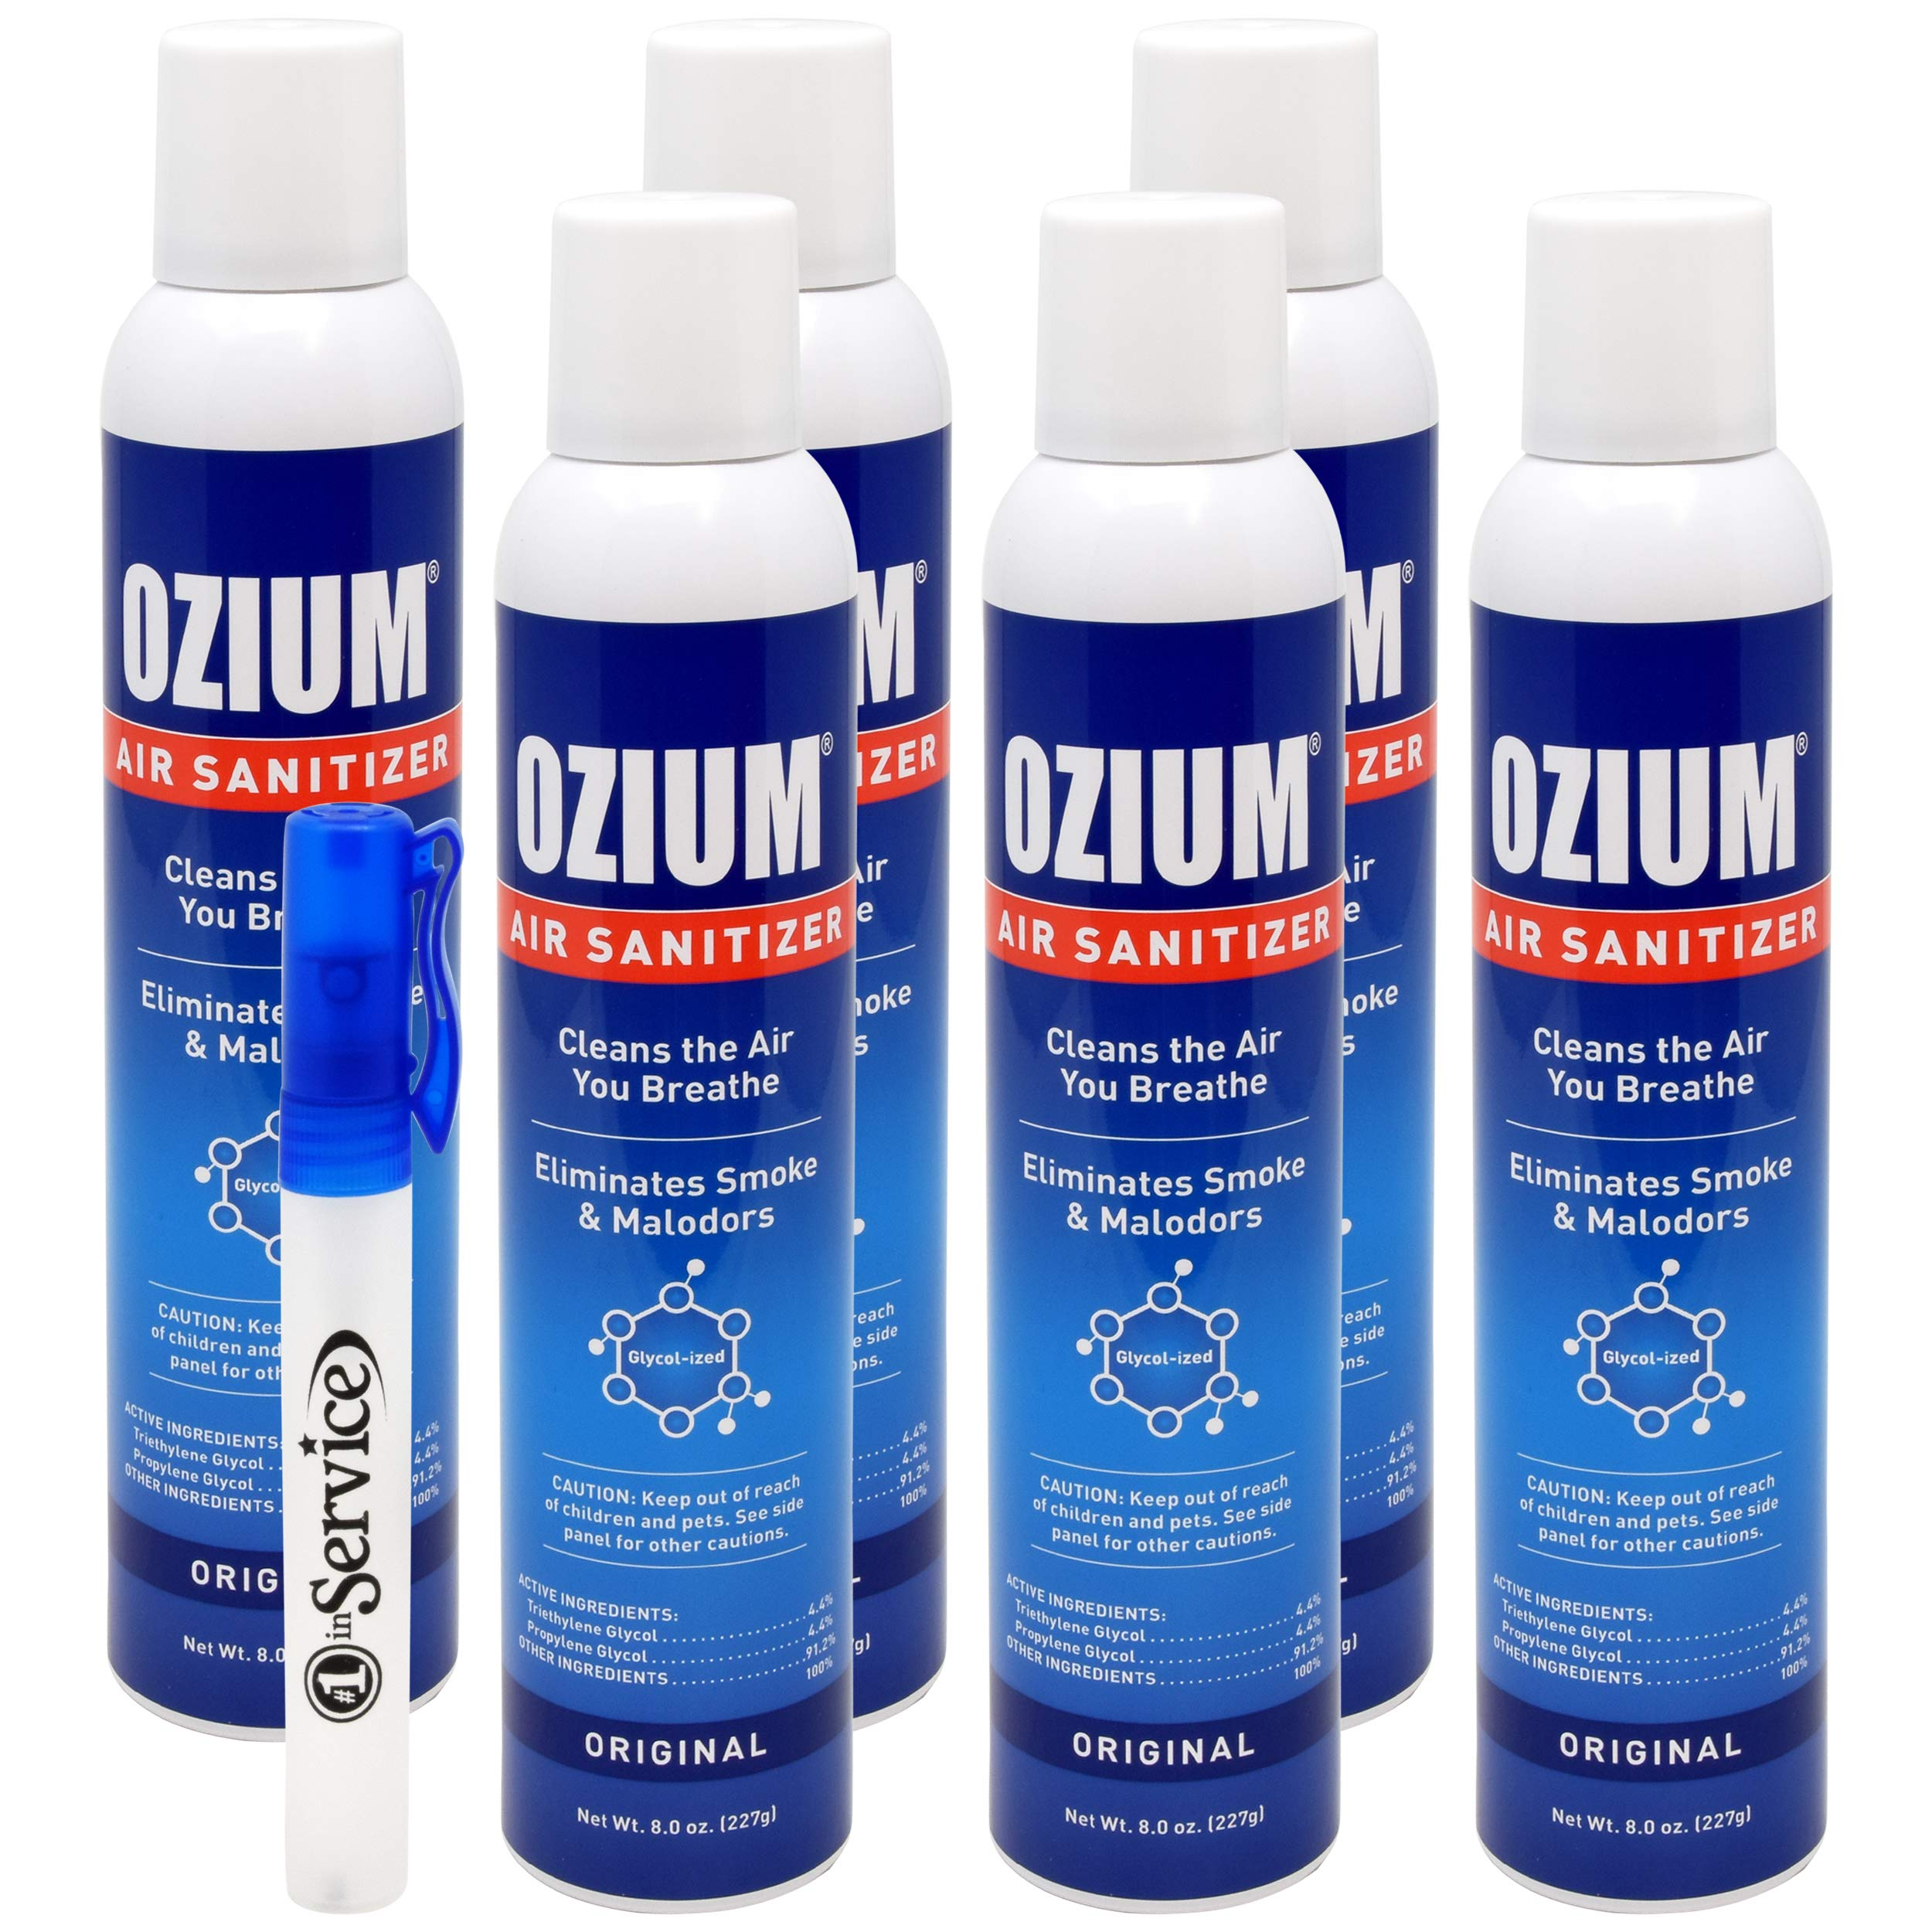 Ozium Air Sanitizer Reduces Airborne Bacteria Eliminates Smoke & Malodors 8oz Spray Air Freshener, Original (6 Pack) Hand Sanitizer Included by Ozium (Image #1)